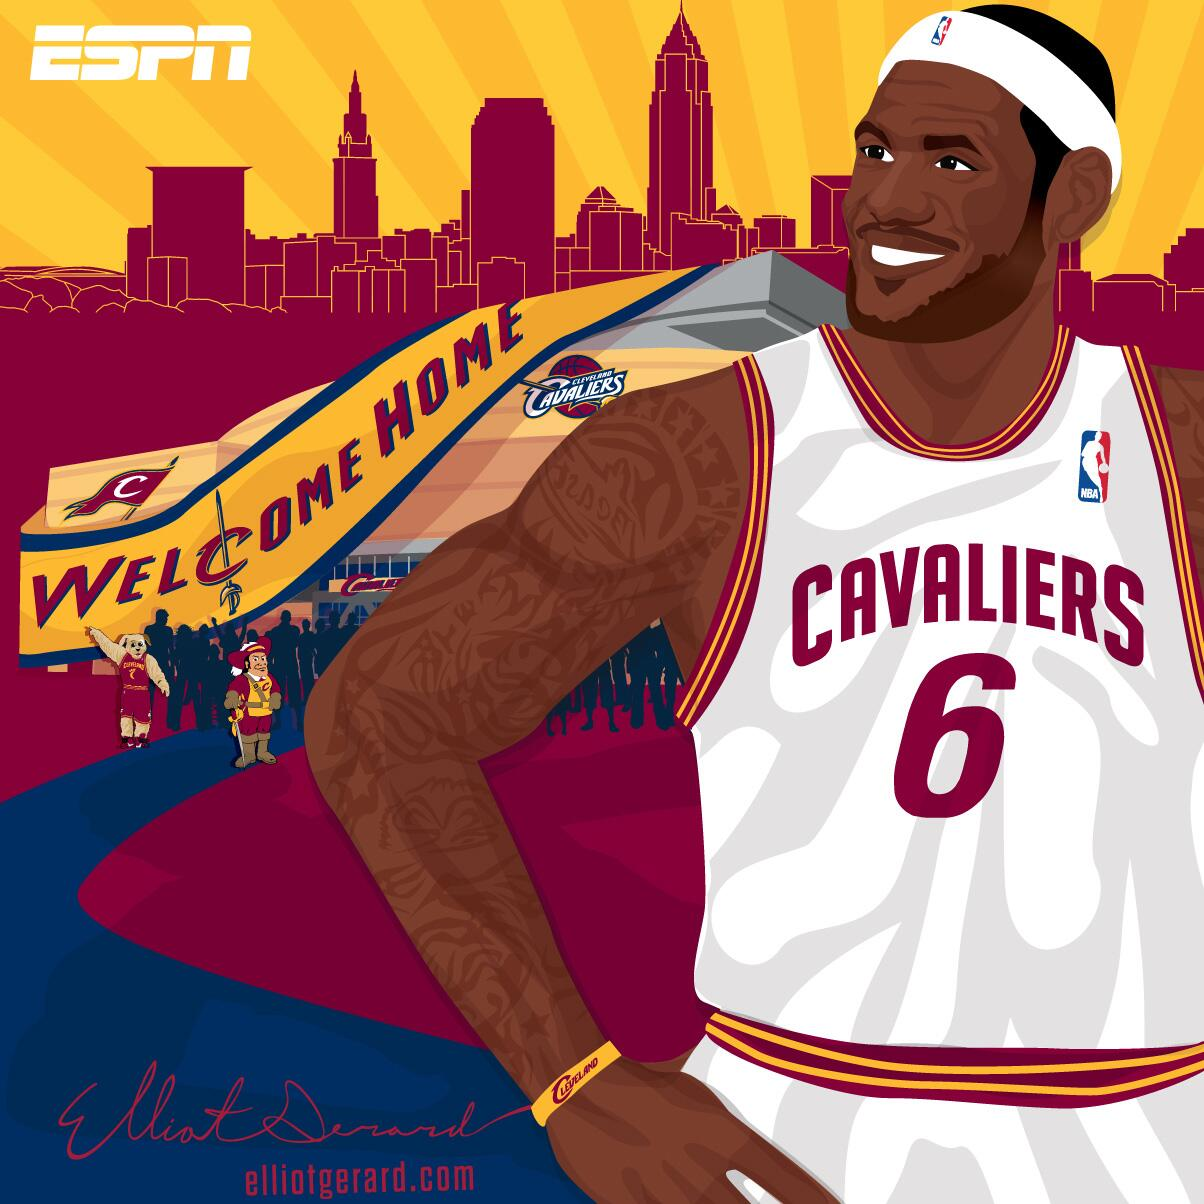 It's official. LeBron James is headed home. http://t.co/ZvwmK354Pf